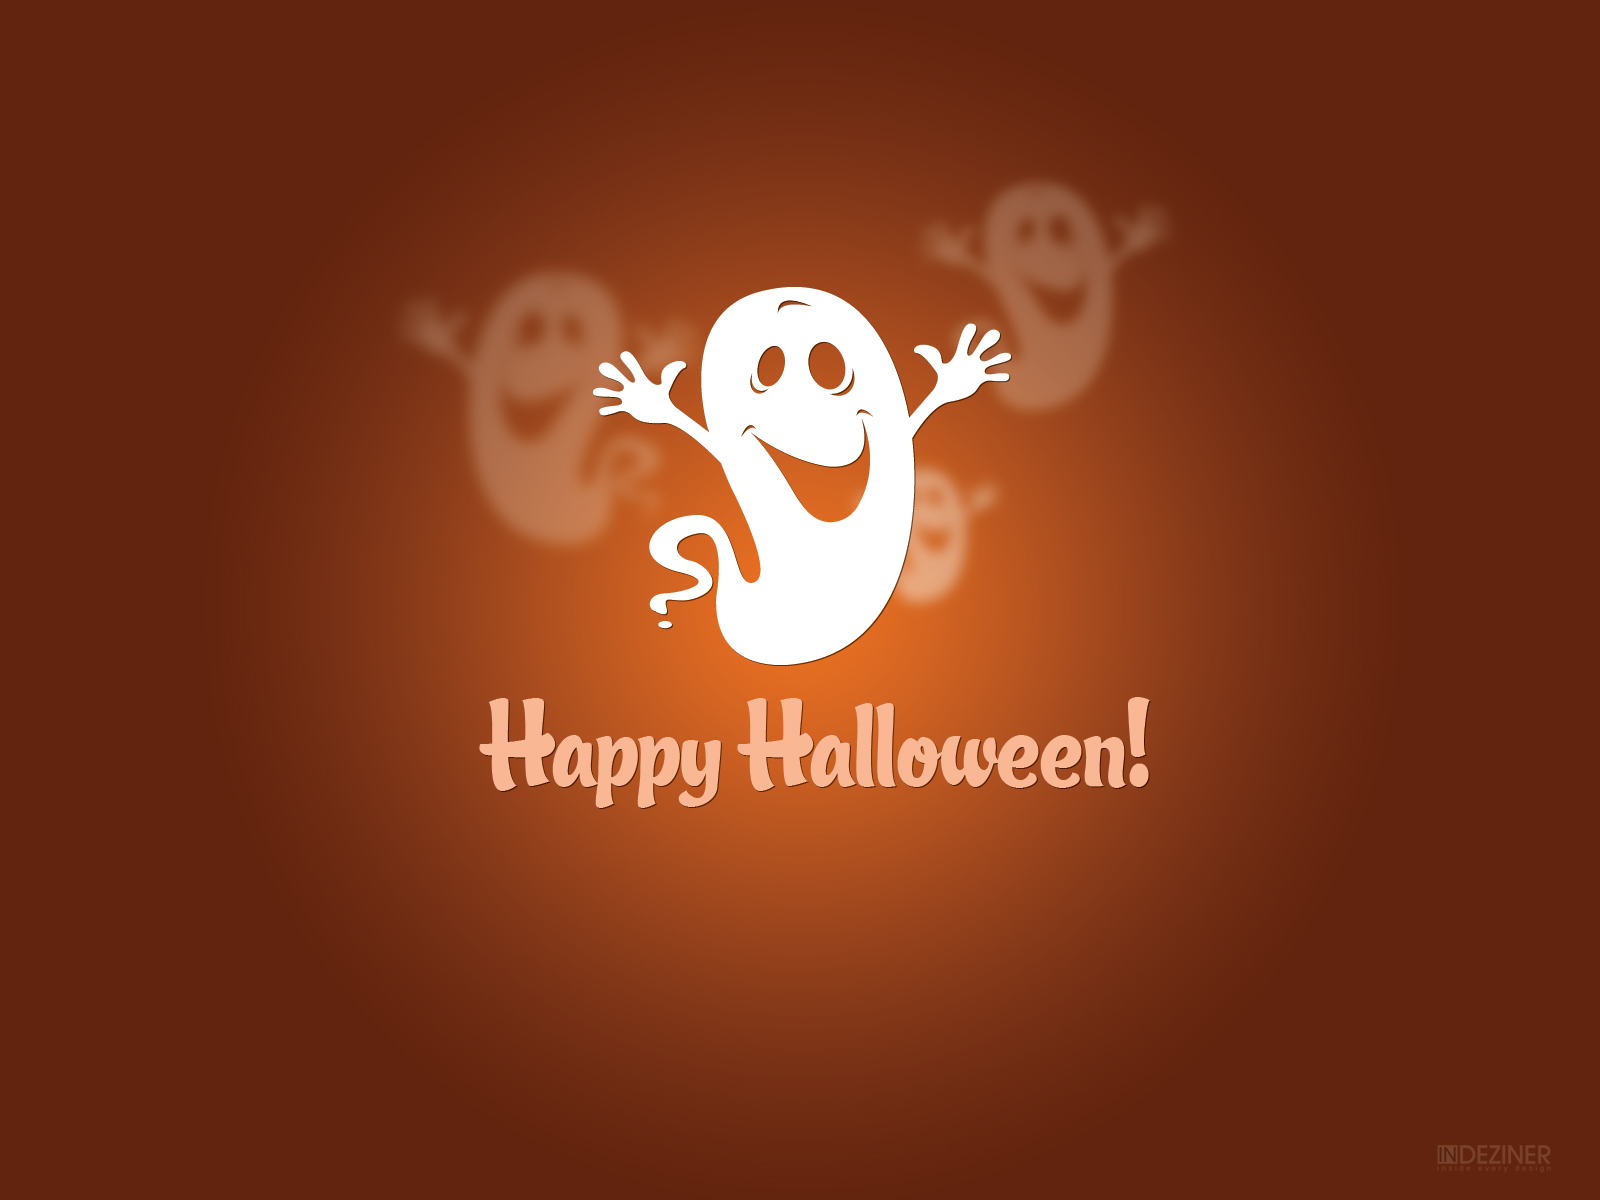 happy halloween wallpapers 15710 1600x1200jpg 1600x1200